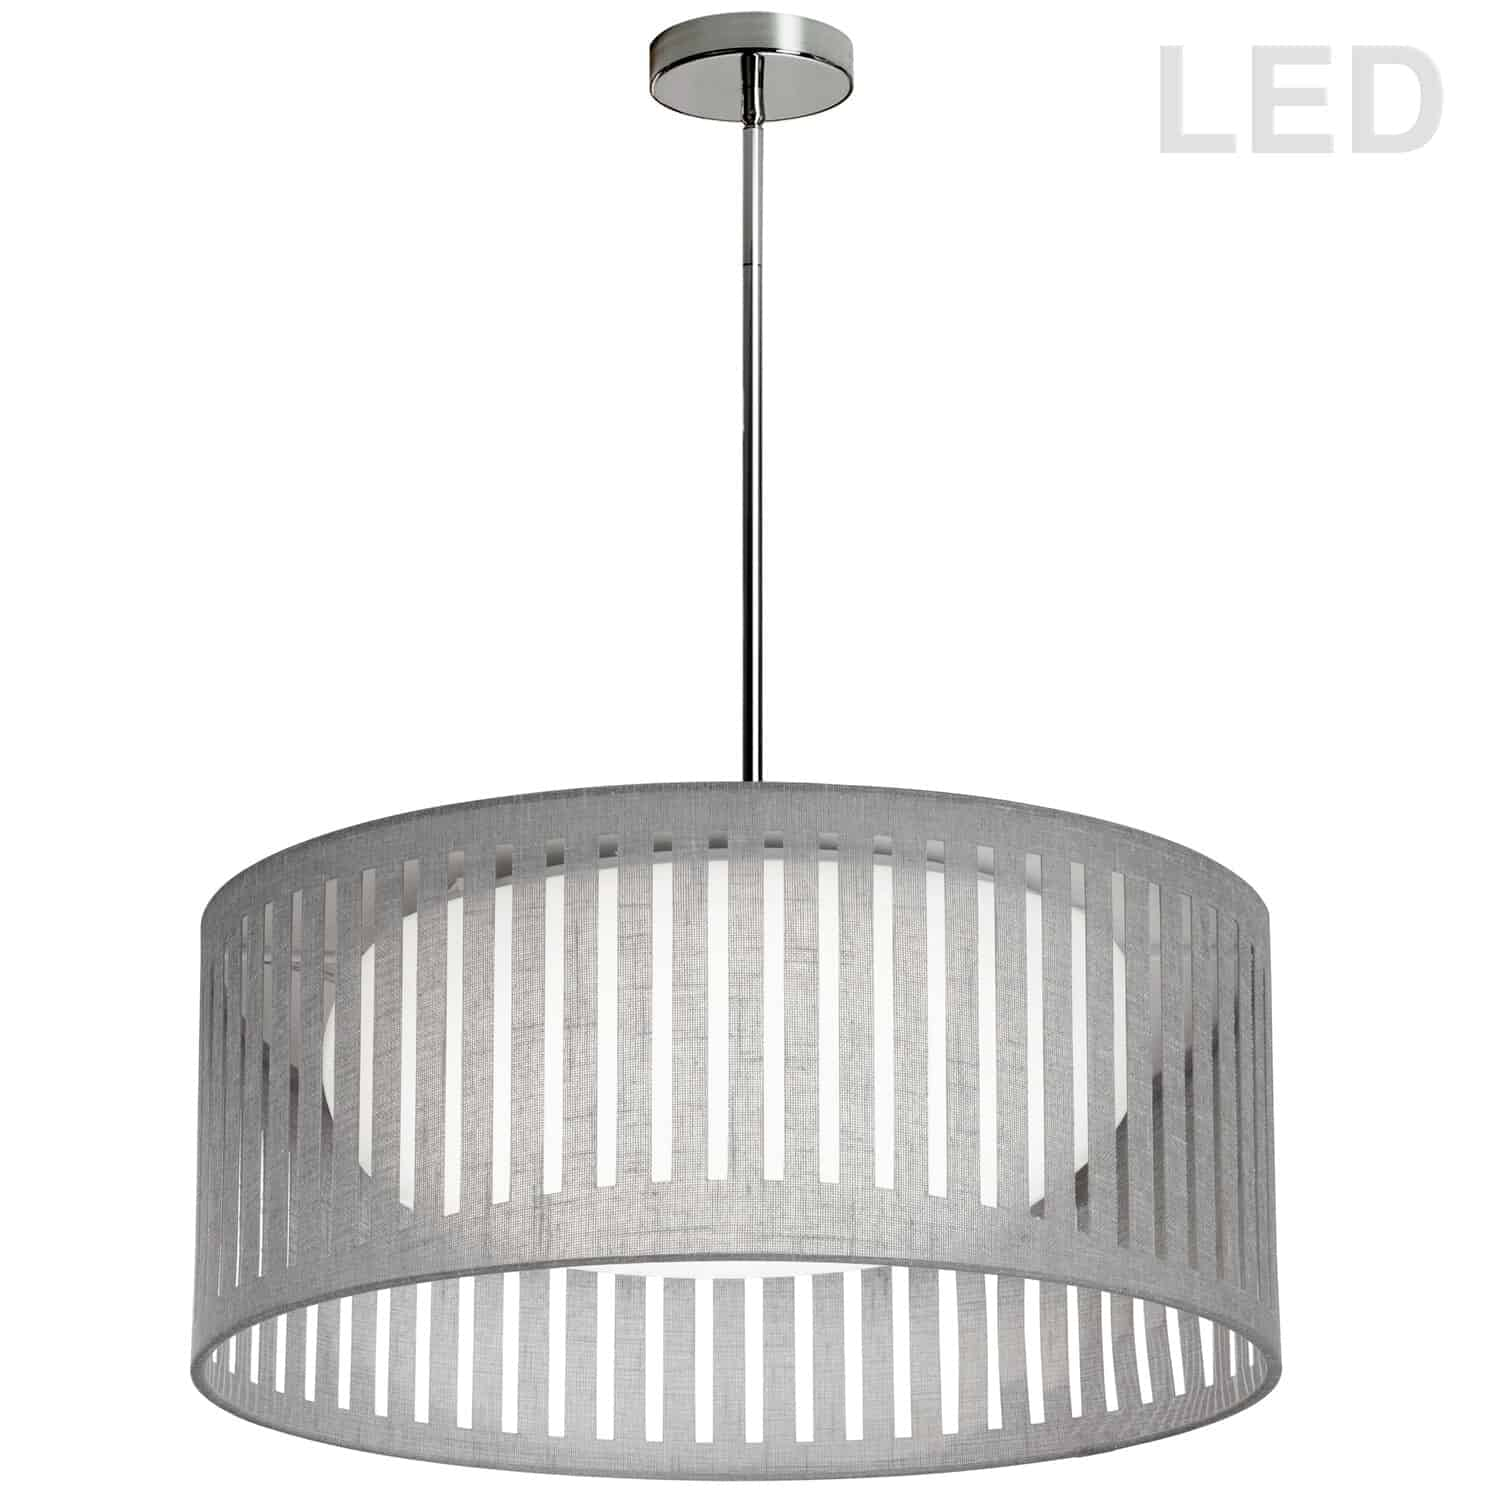 LED Slit Drum Shade, Grey